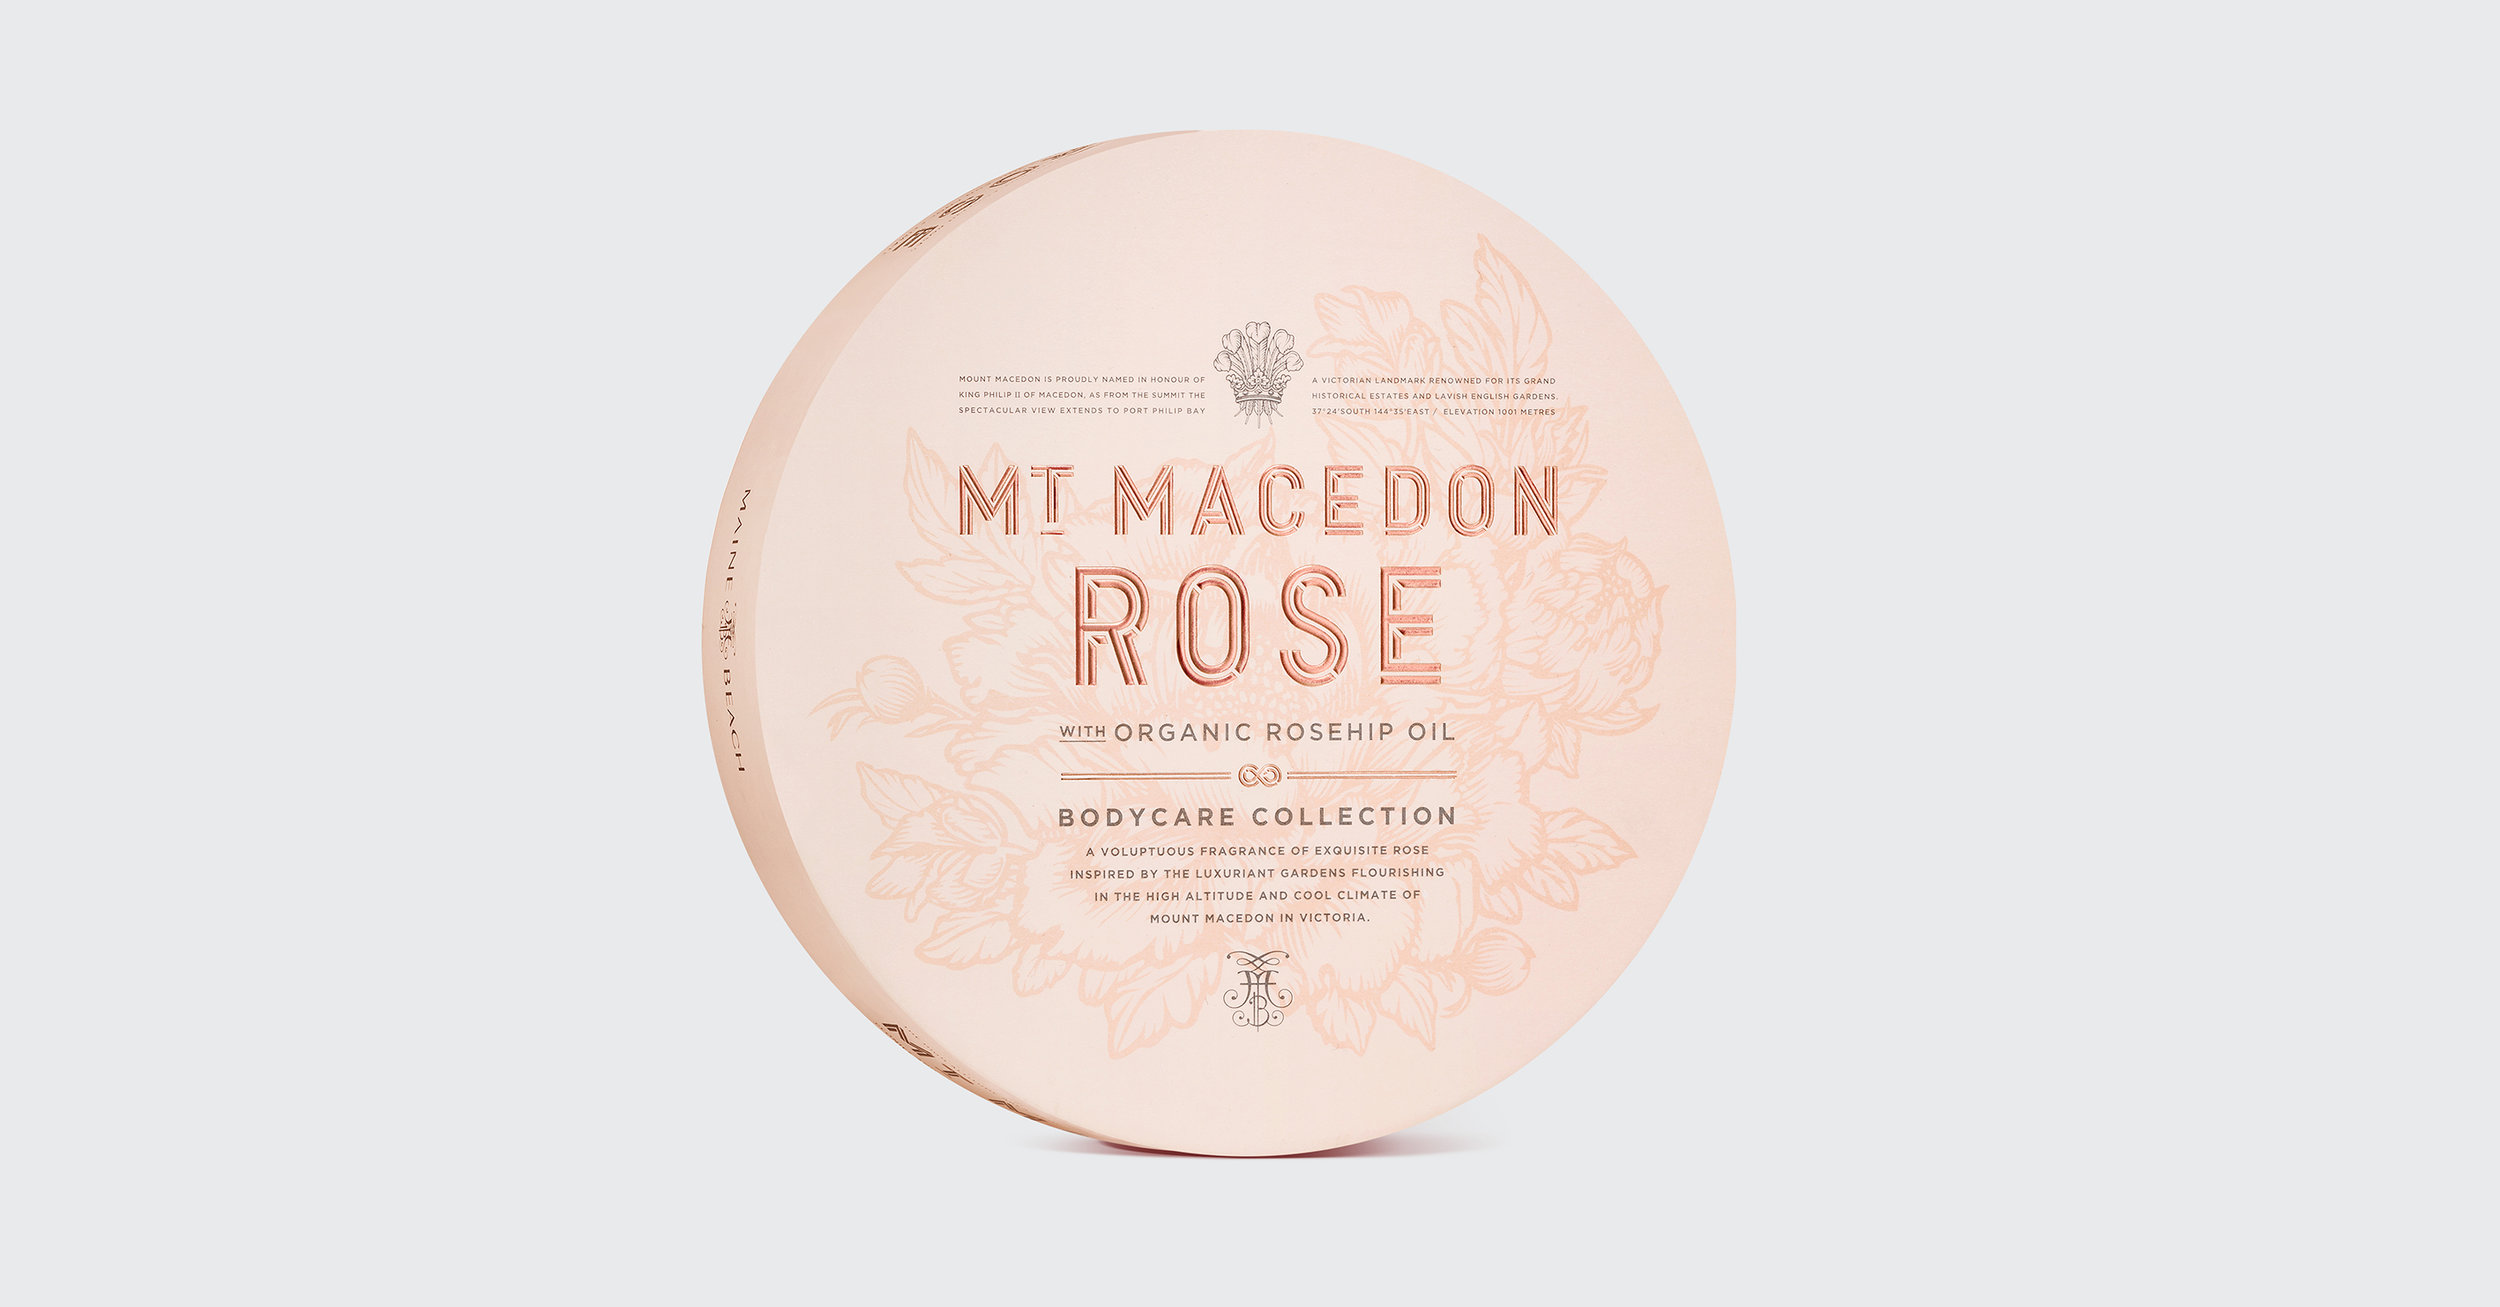 Mt Macedon Rose Bodycare / World Brand Design Society